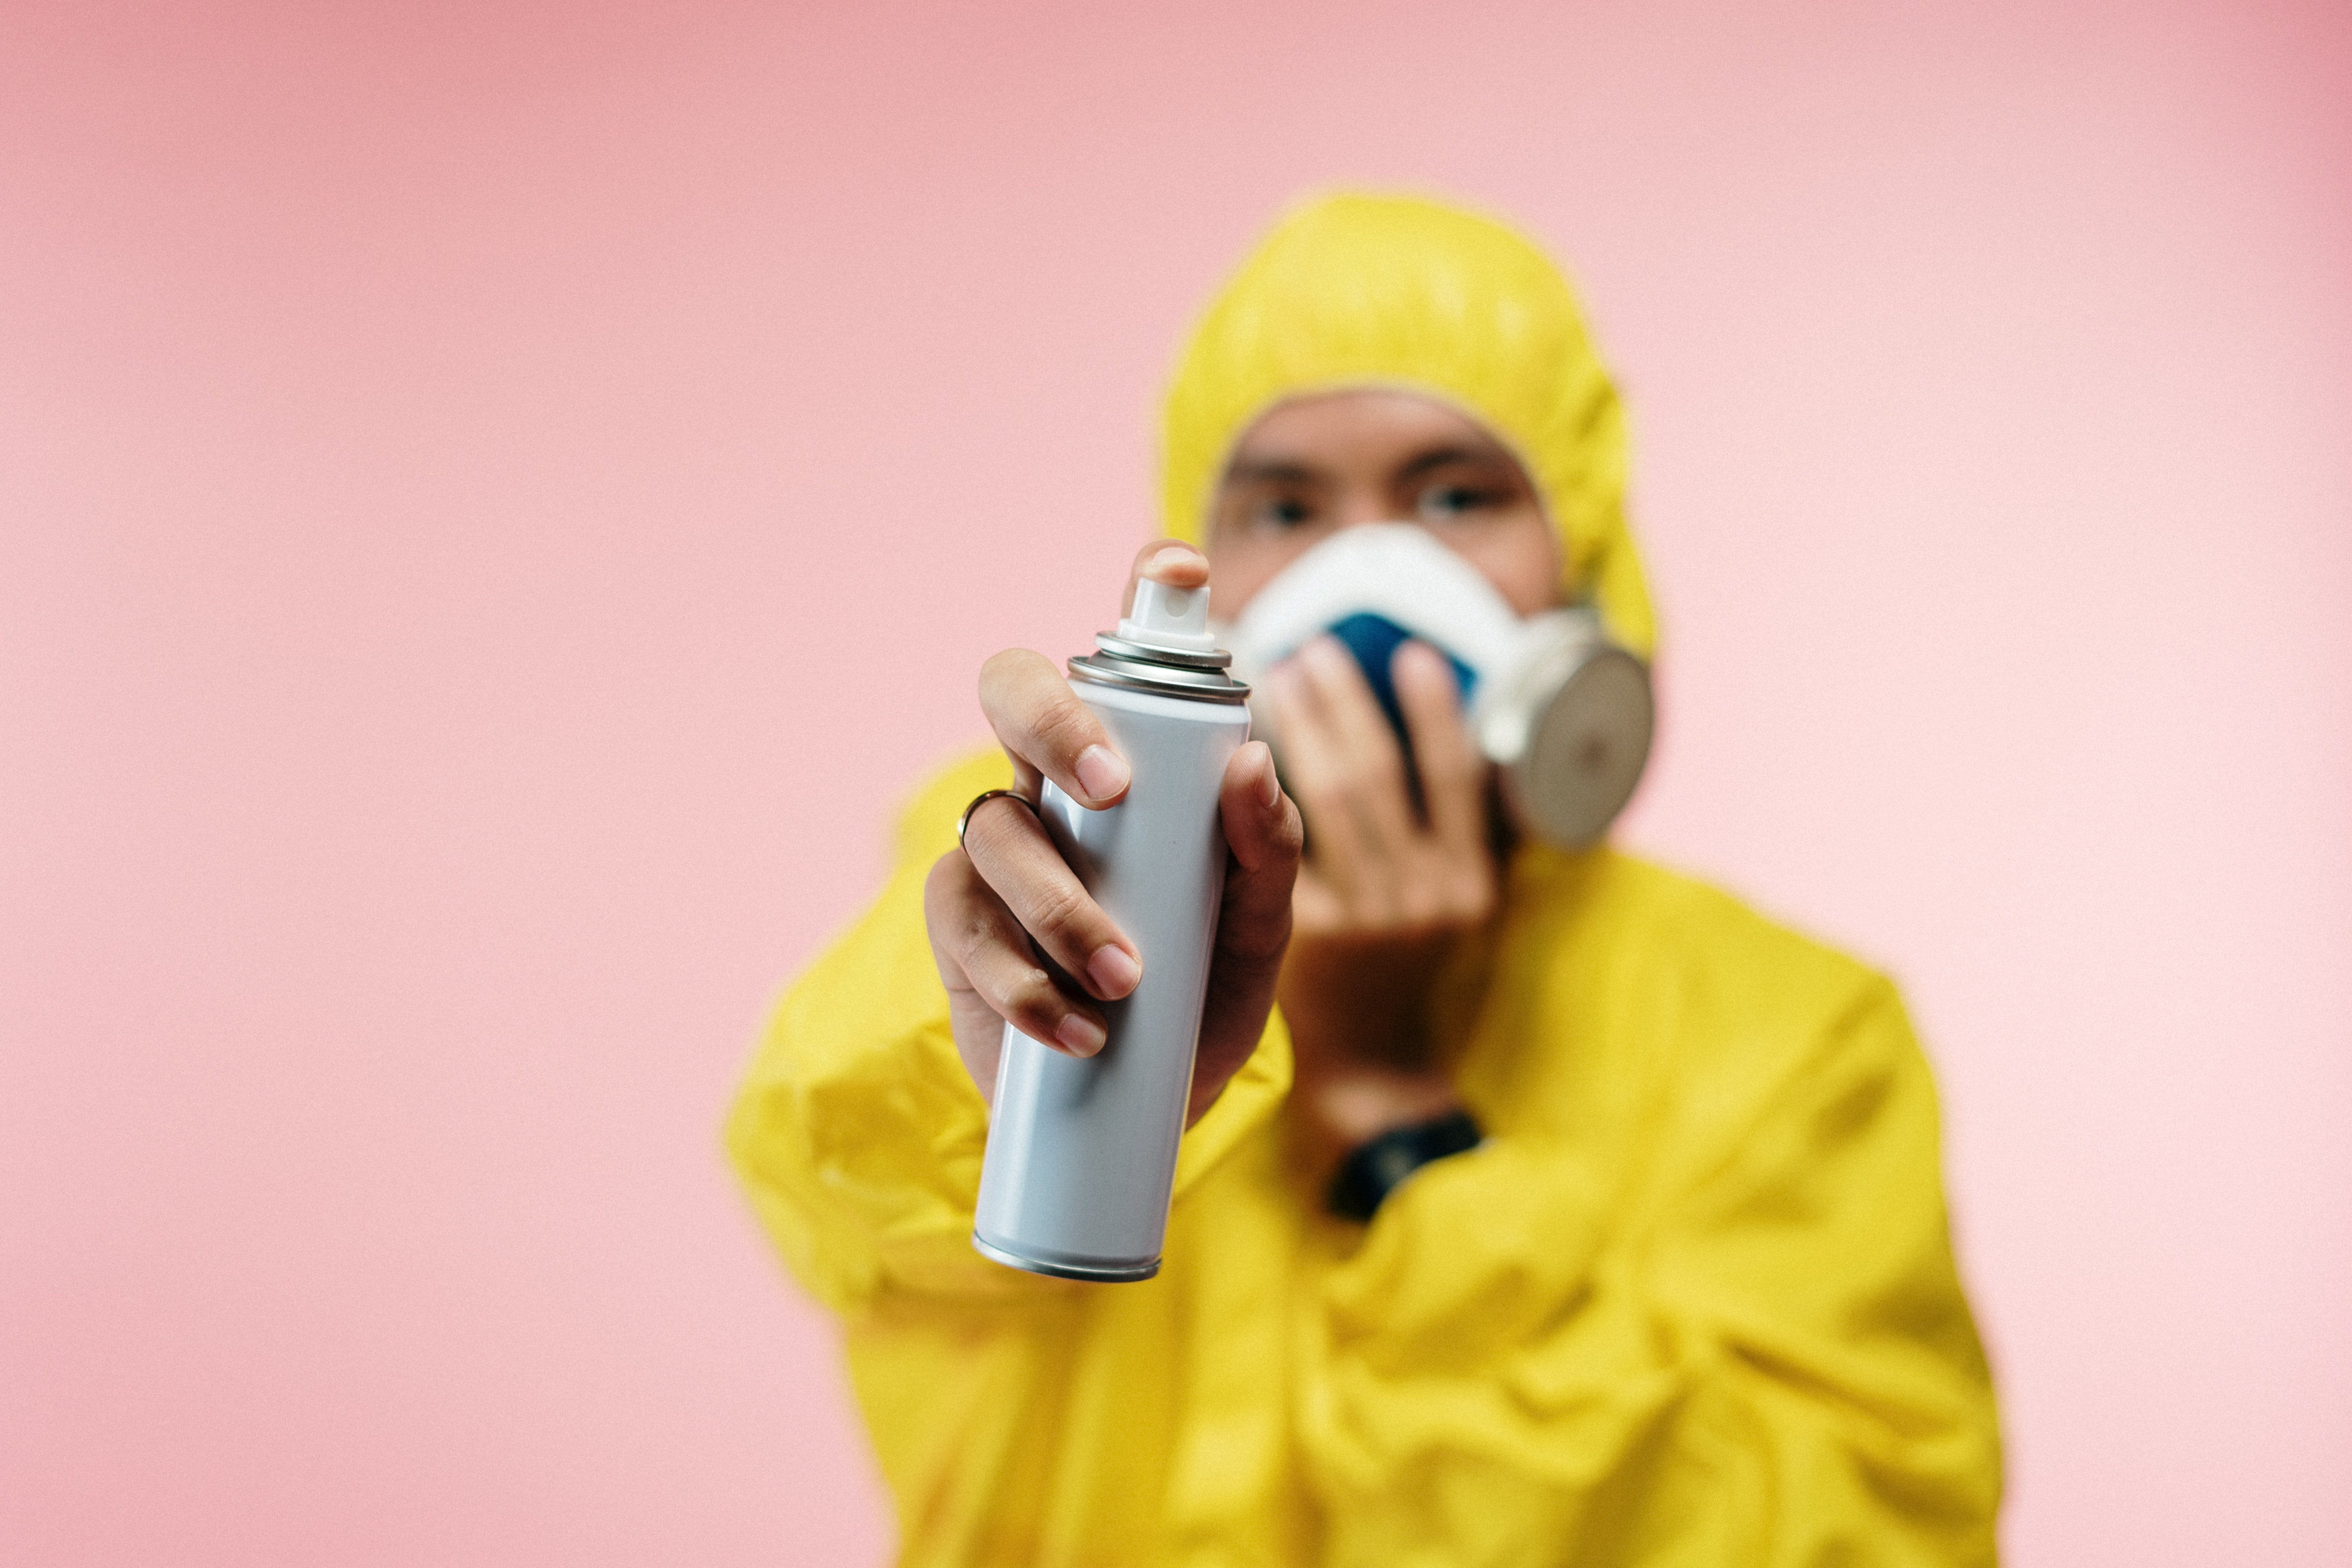 man-in-coveralls-holding-spray-bottle-3951389